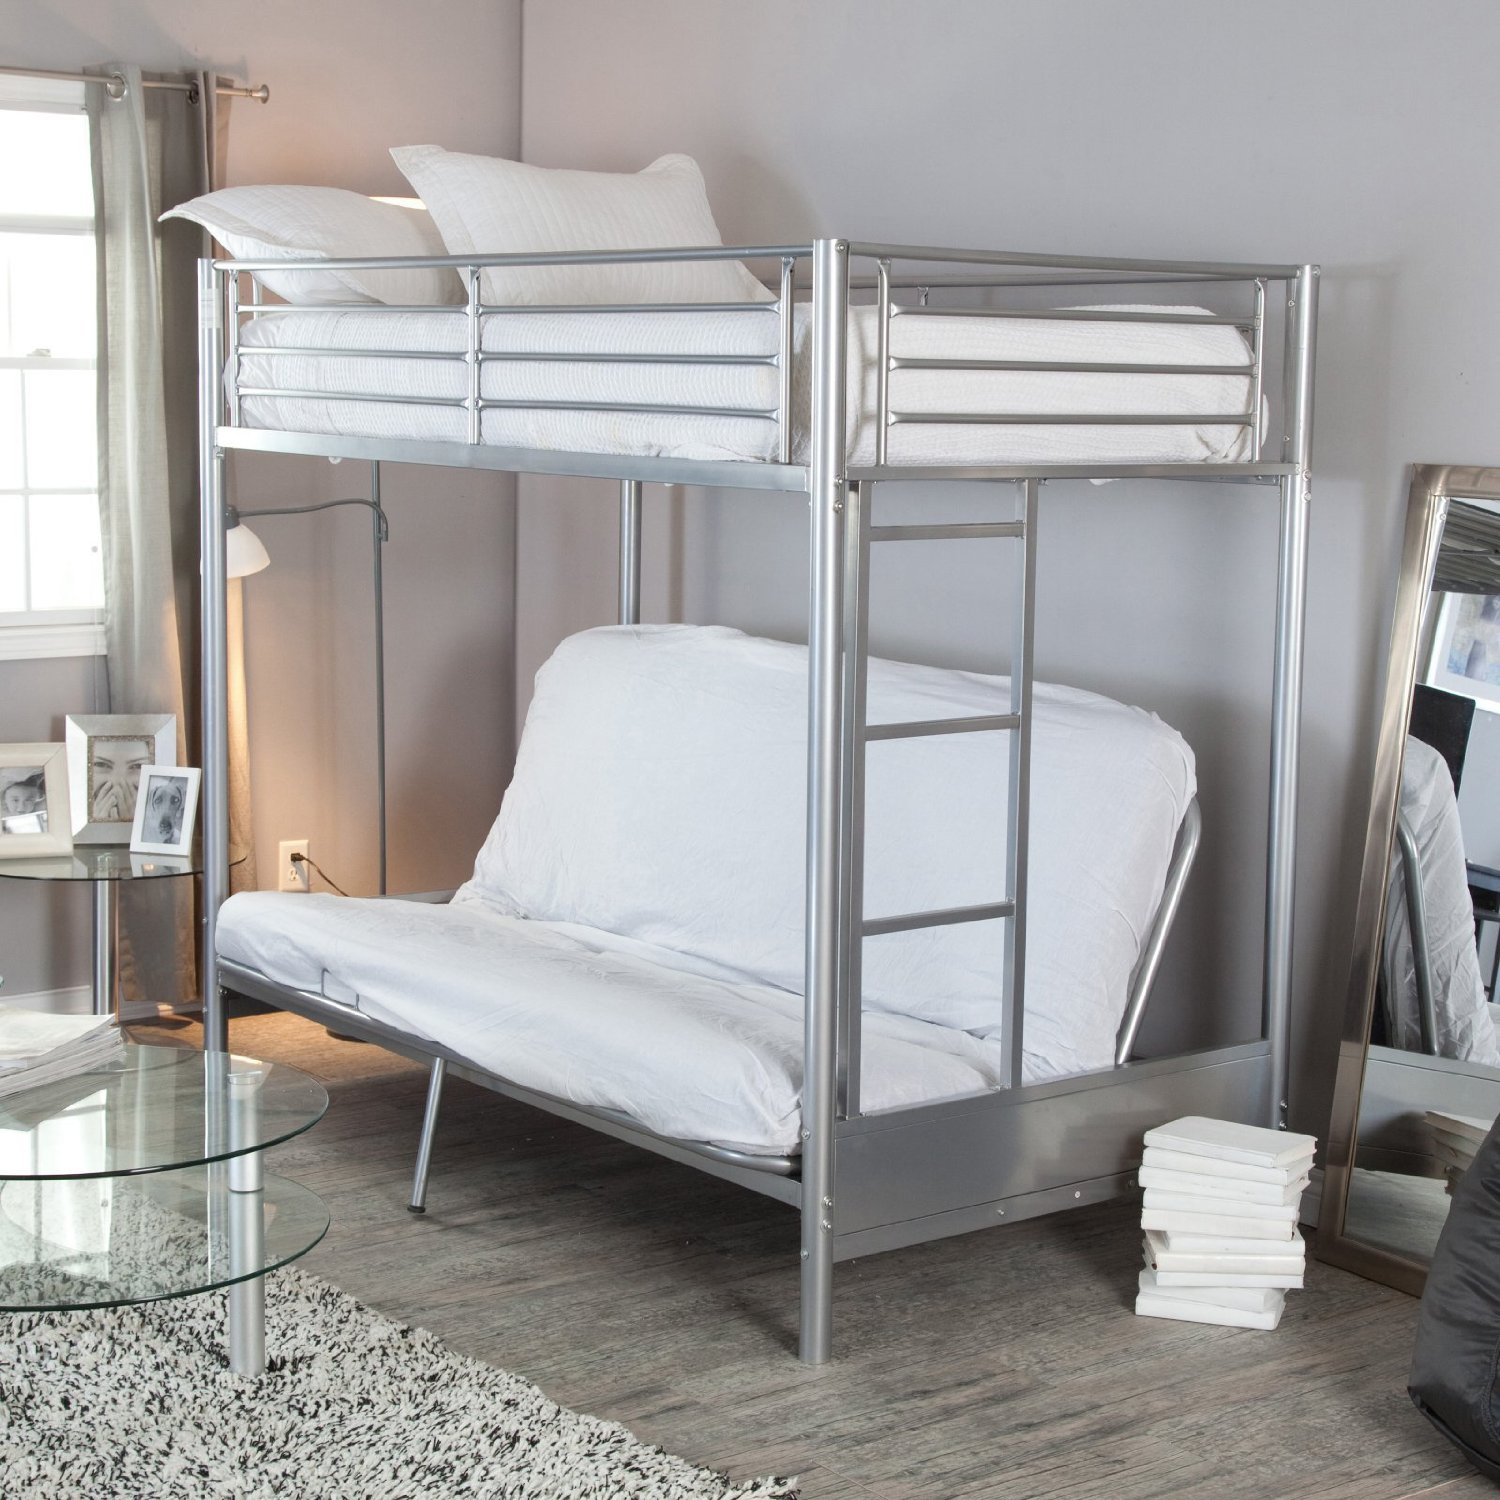 Image of: Metal Bunk Beds with Futon Frame